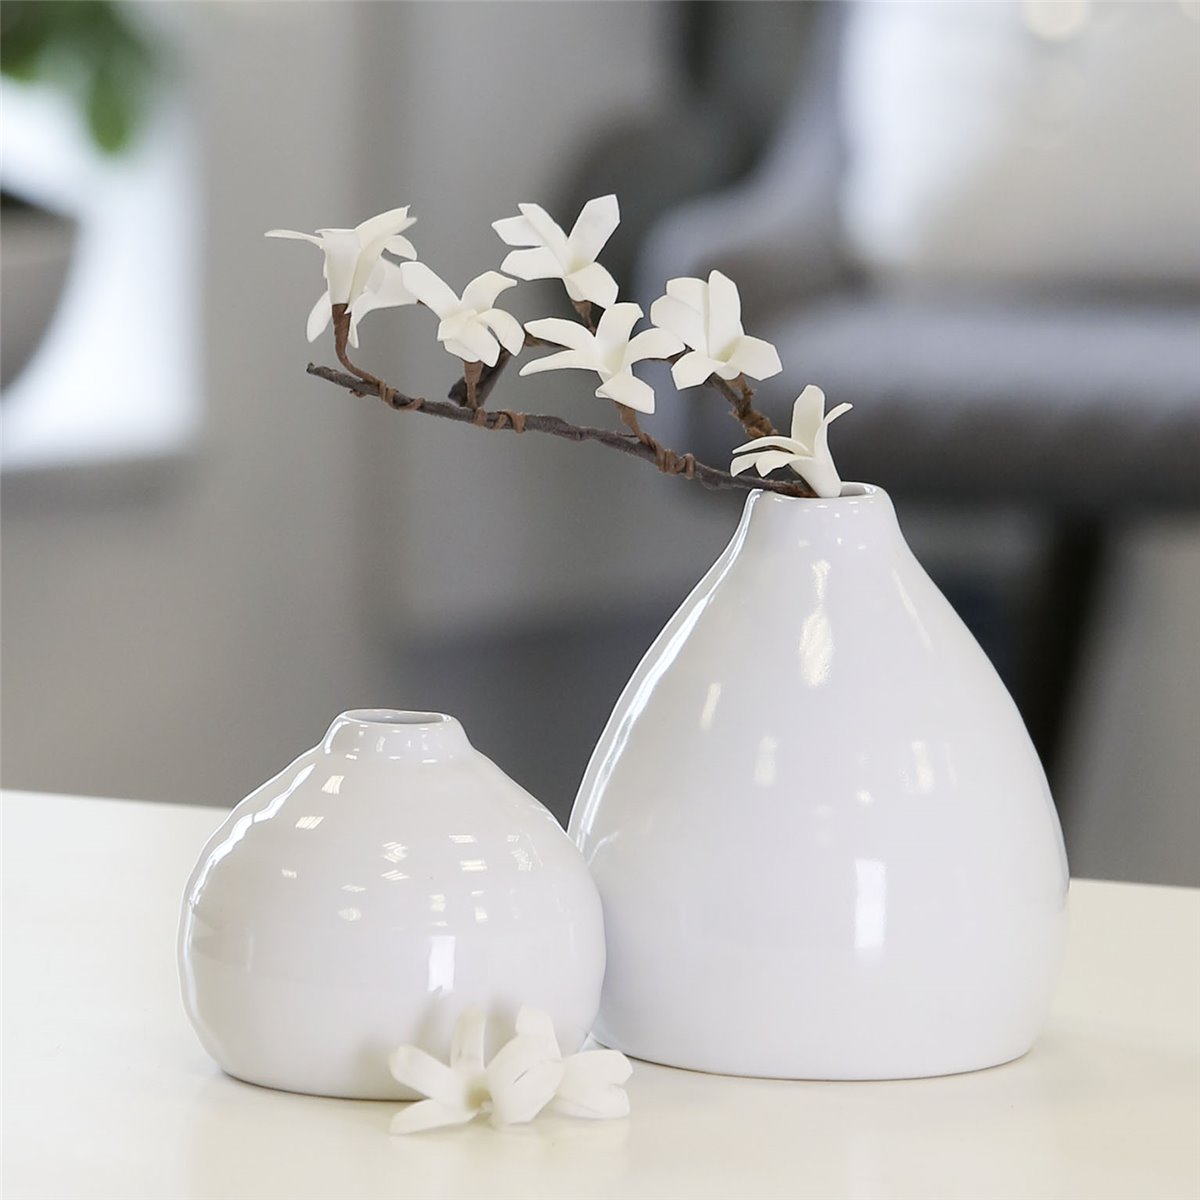 blumenvase rillo 2er set vase tischdeko keramik wei ebay. Black Bedroom Furniture Sets. Home Design Ideas